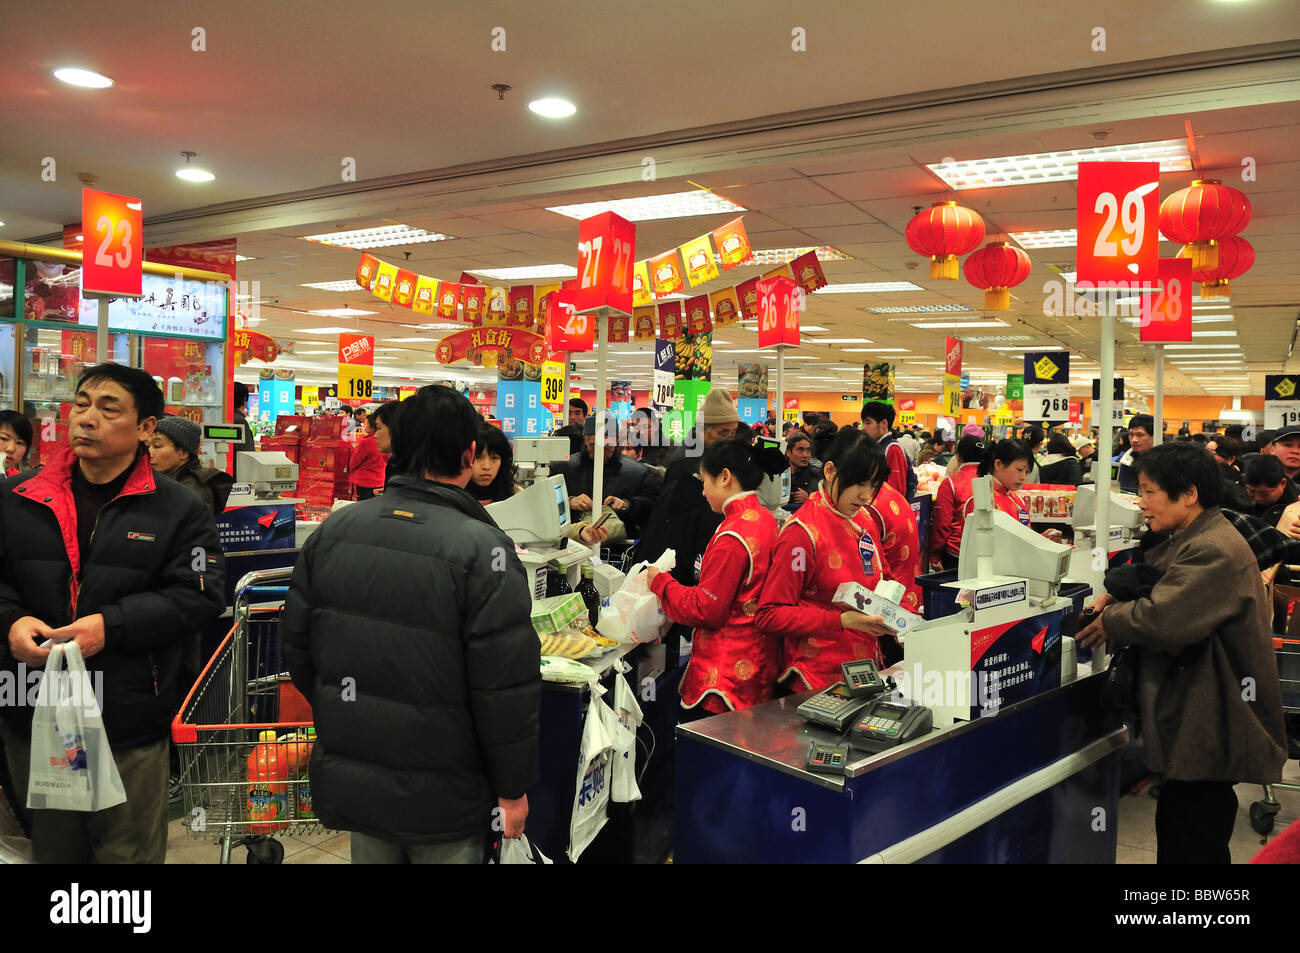 Crowded supermarket in shanghai before chinese new year - Stock Image